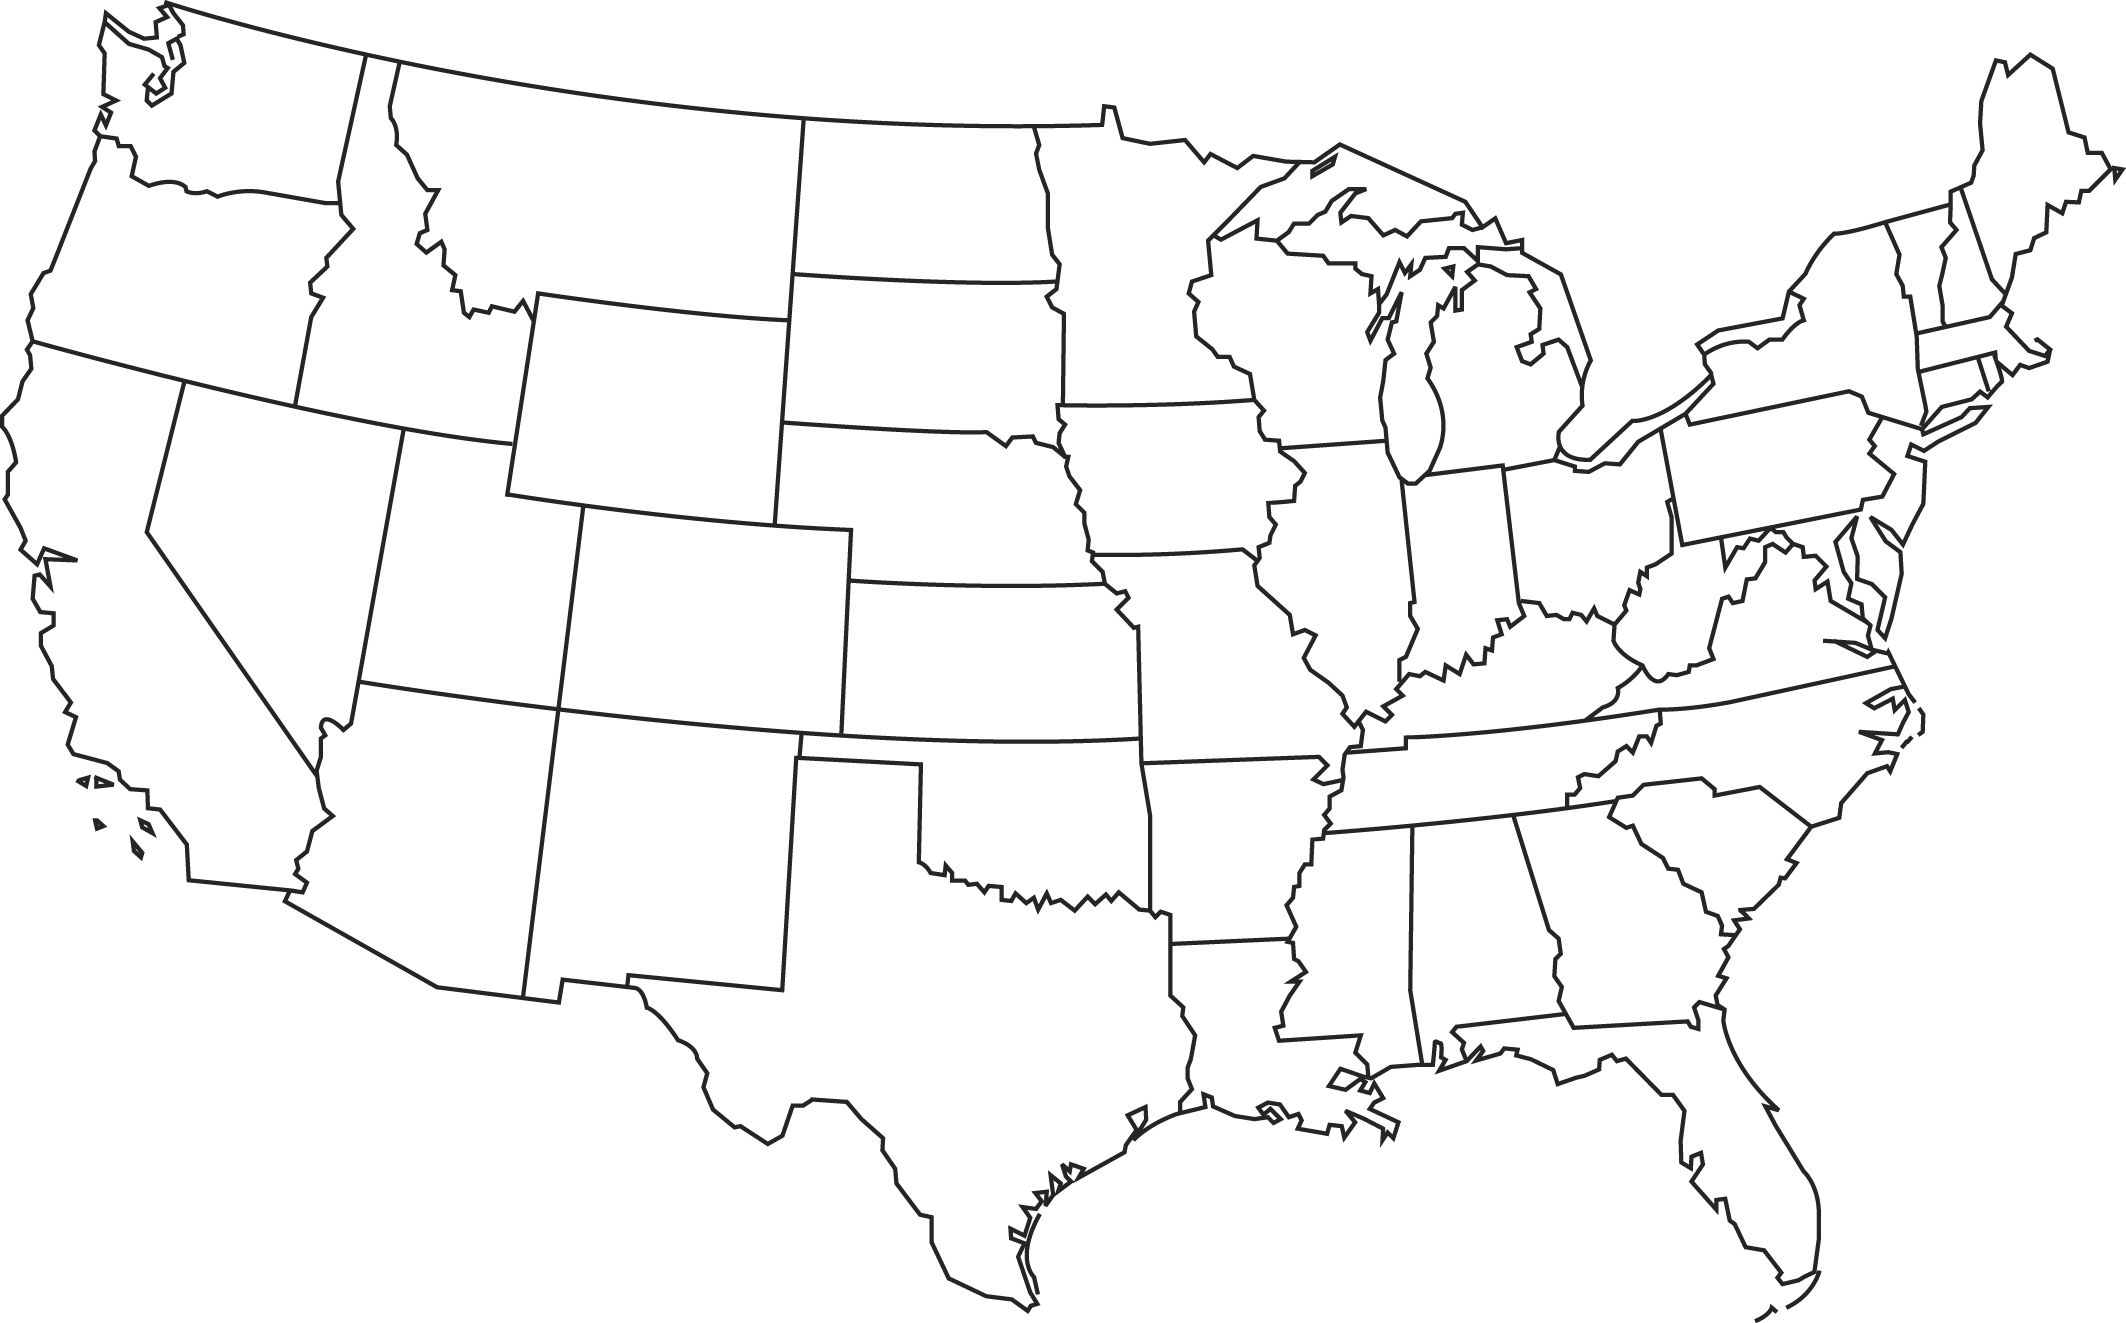 Large Blank United States Map N2 free image